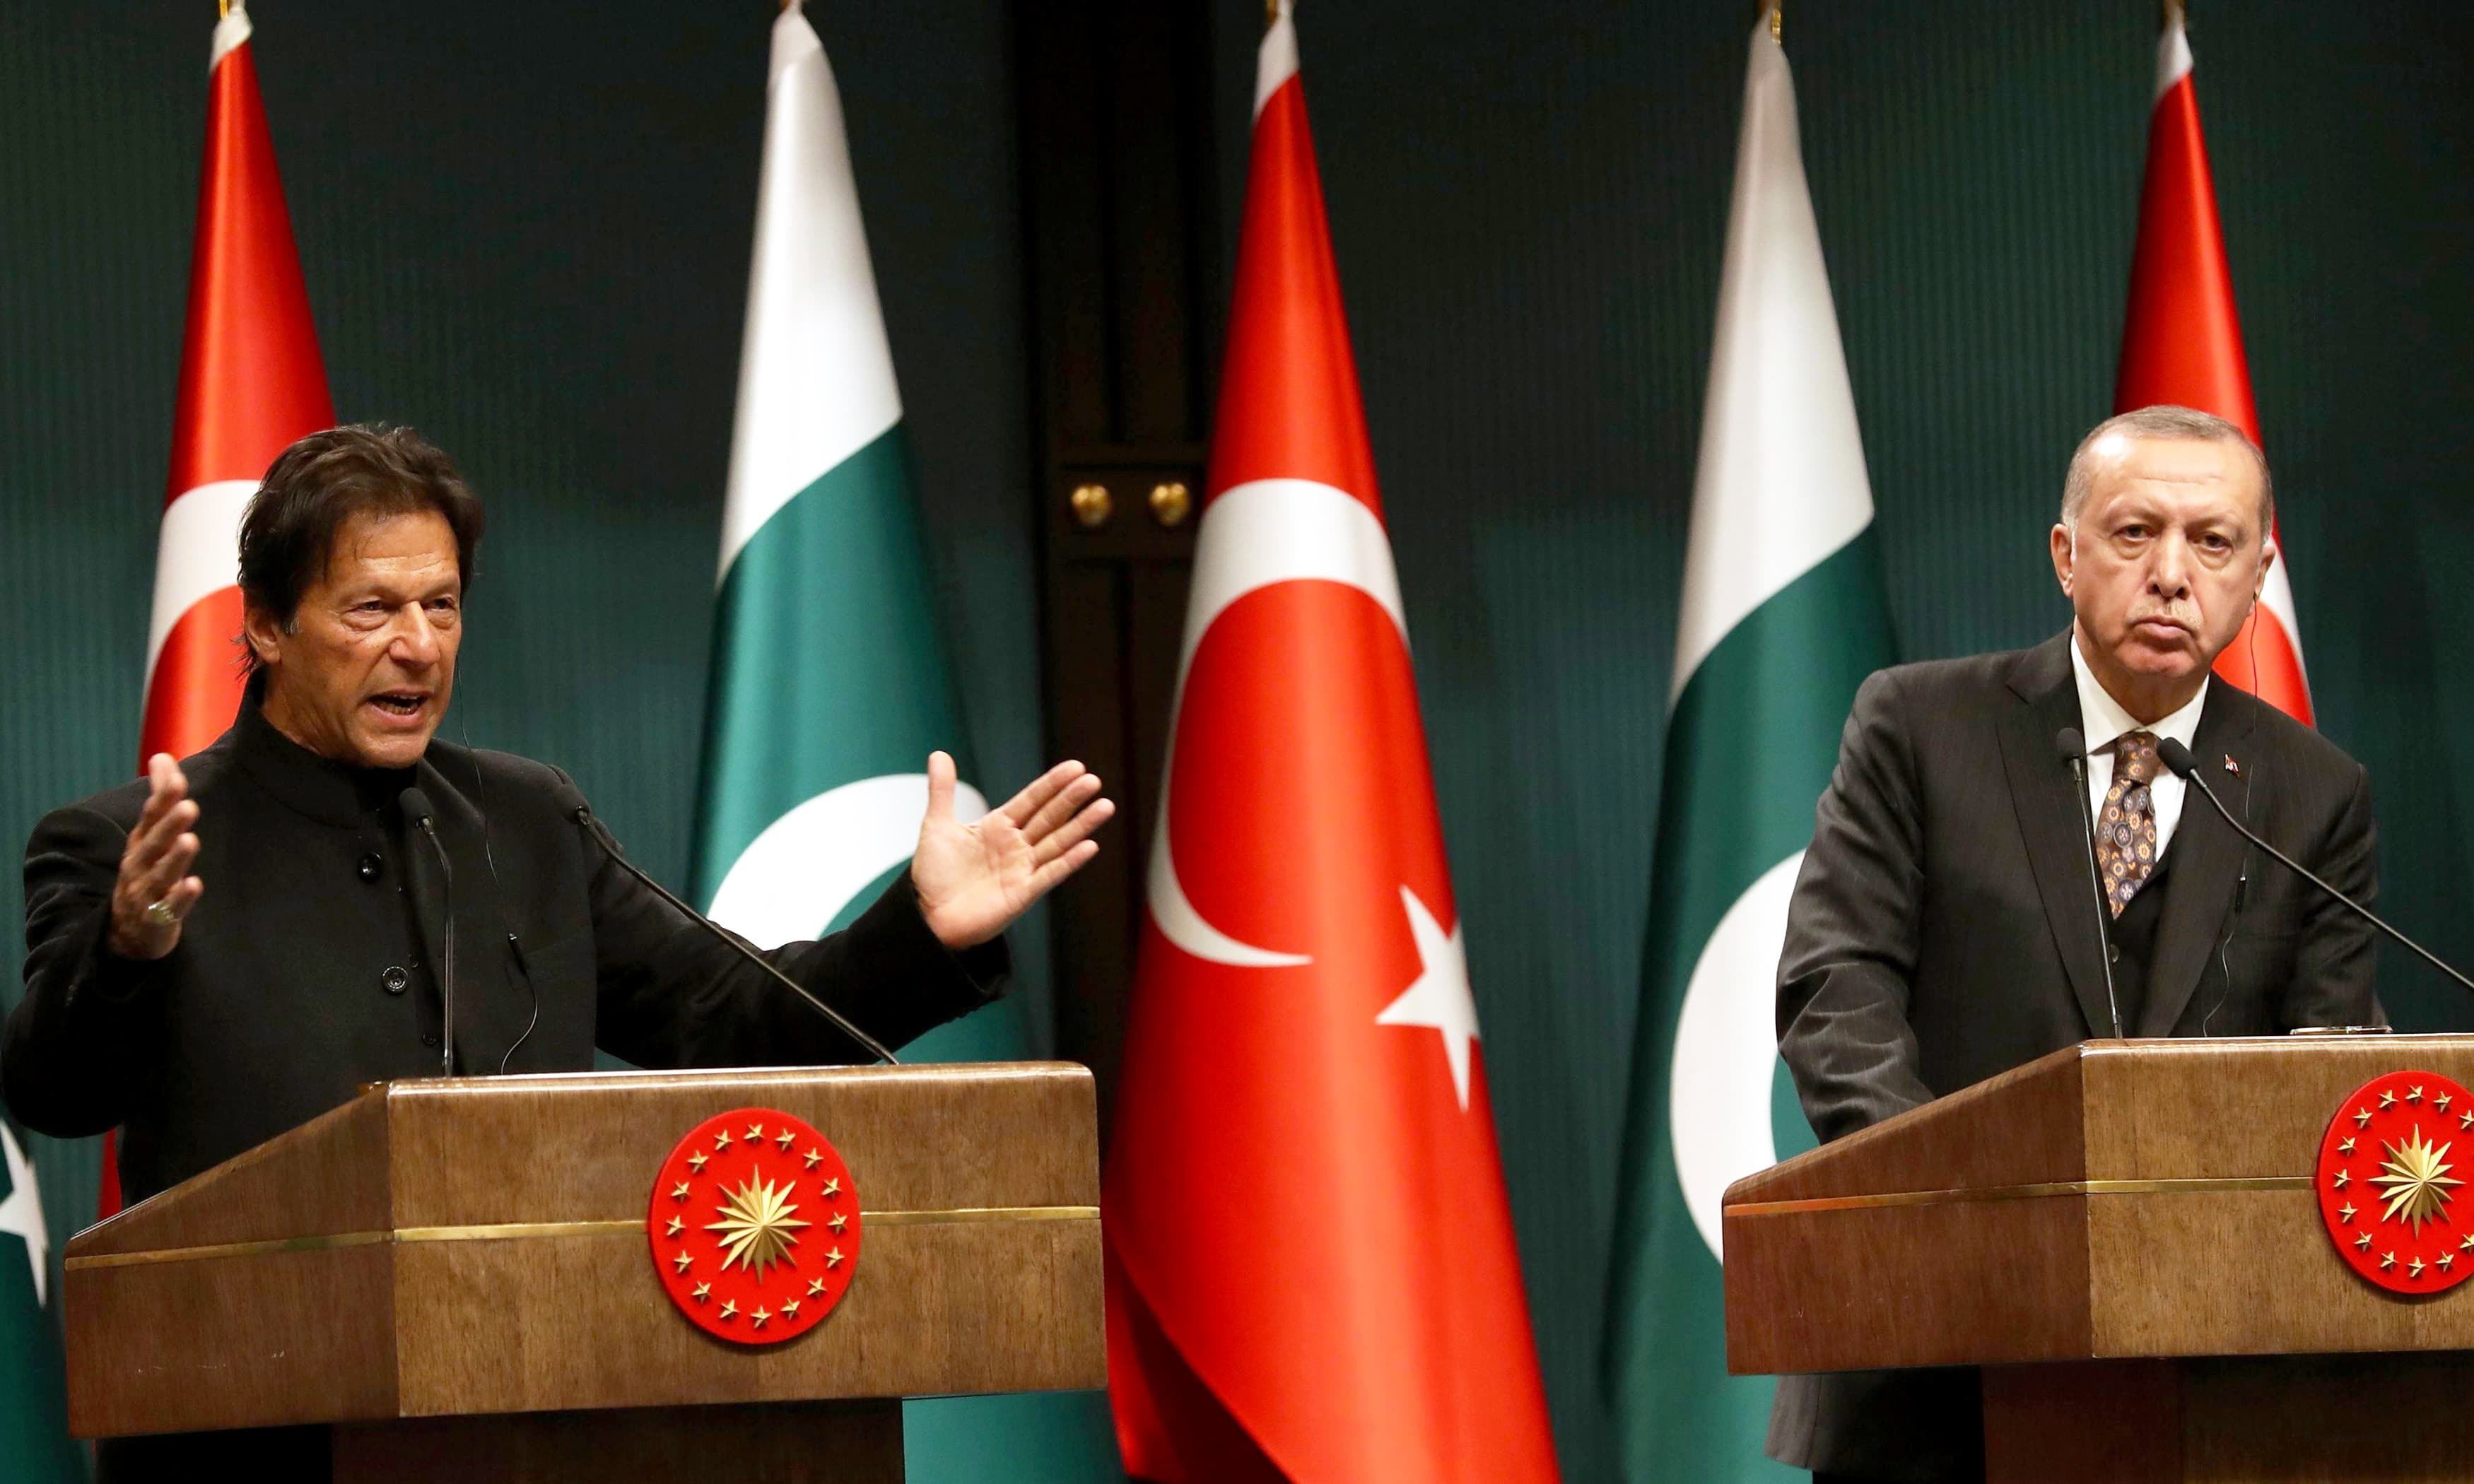 According to Prime Minister Office (PMO), Prime Minister Imran Khan telephoned the Turkish President Recep Tayyip Erdogan to exchange views on recent developments and apprised the latter that Pakistan fully understood Turkey's concerns relating to terrorism. — AFP/File